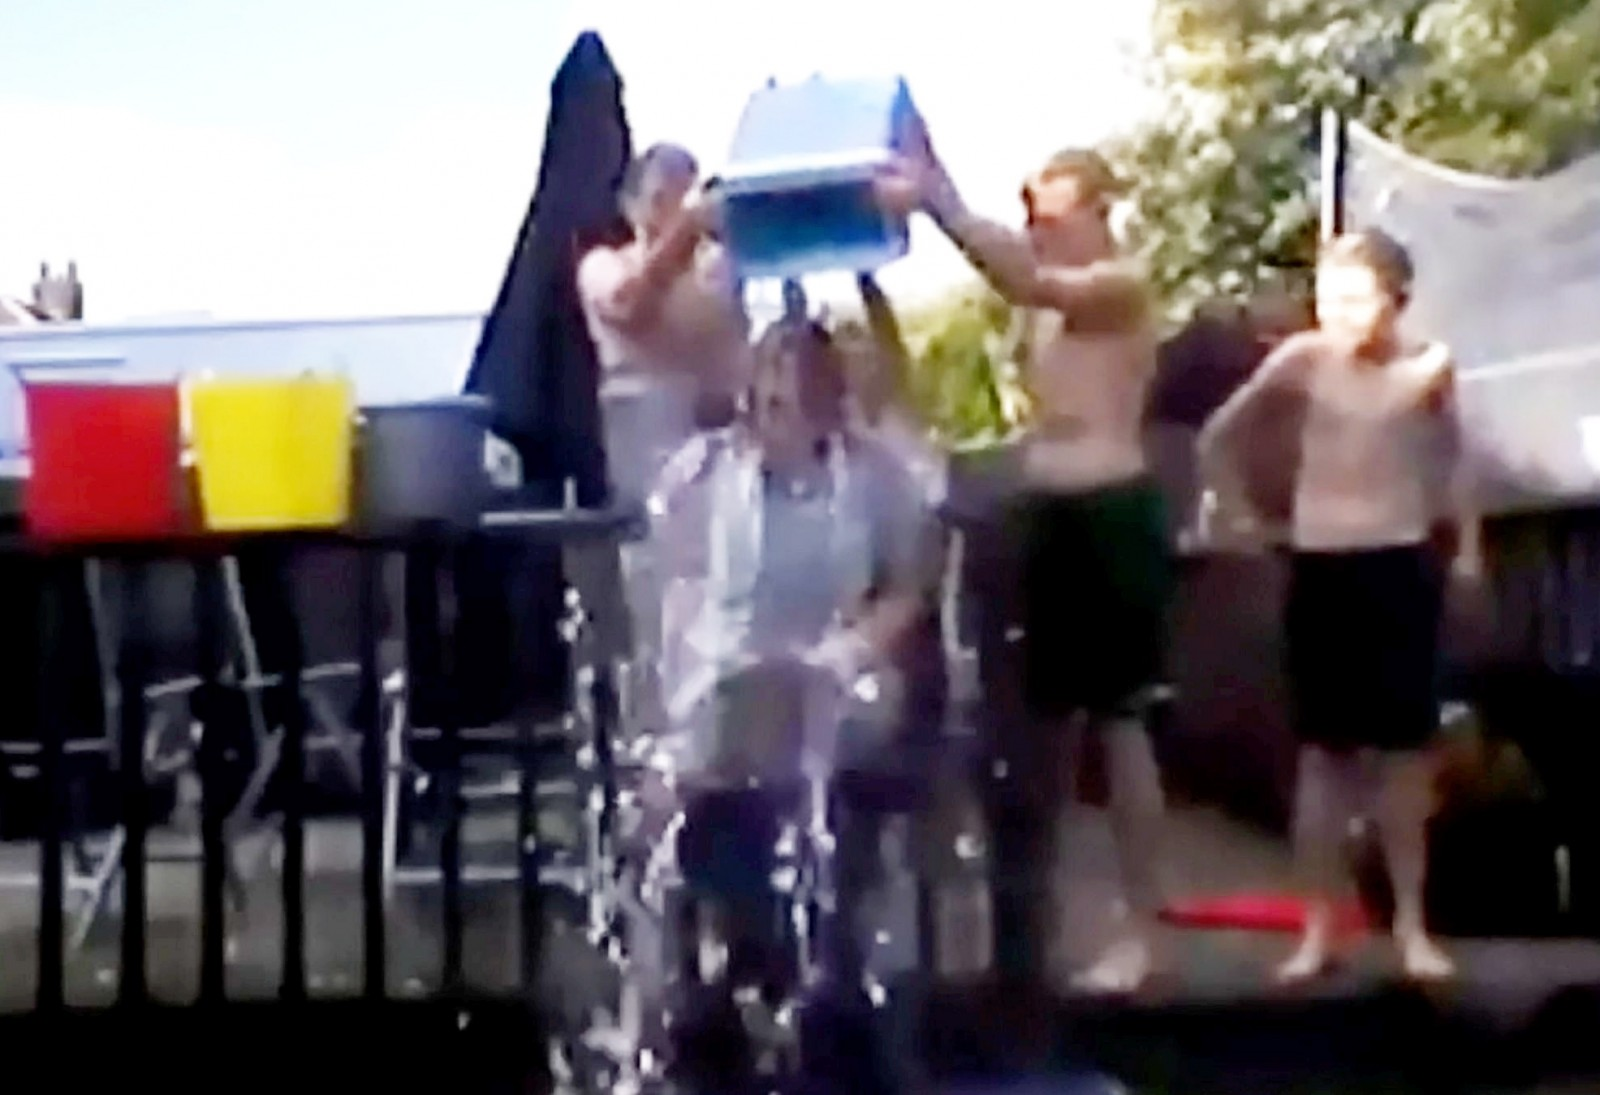 The ice bucket challenge with a totally unexpected outcome…